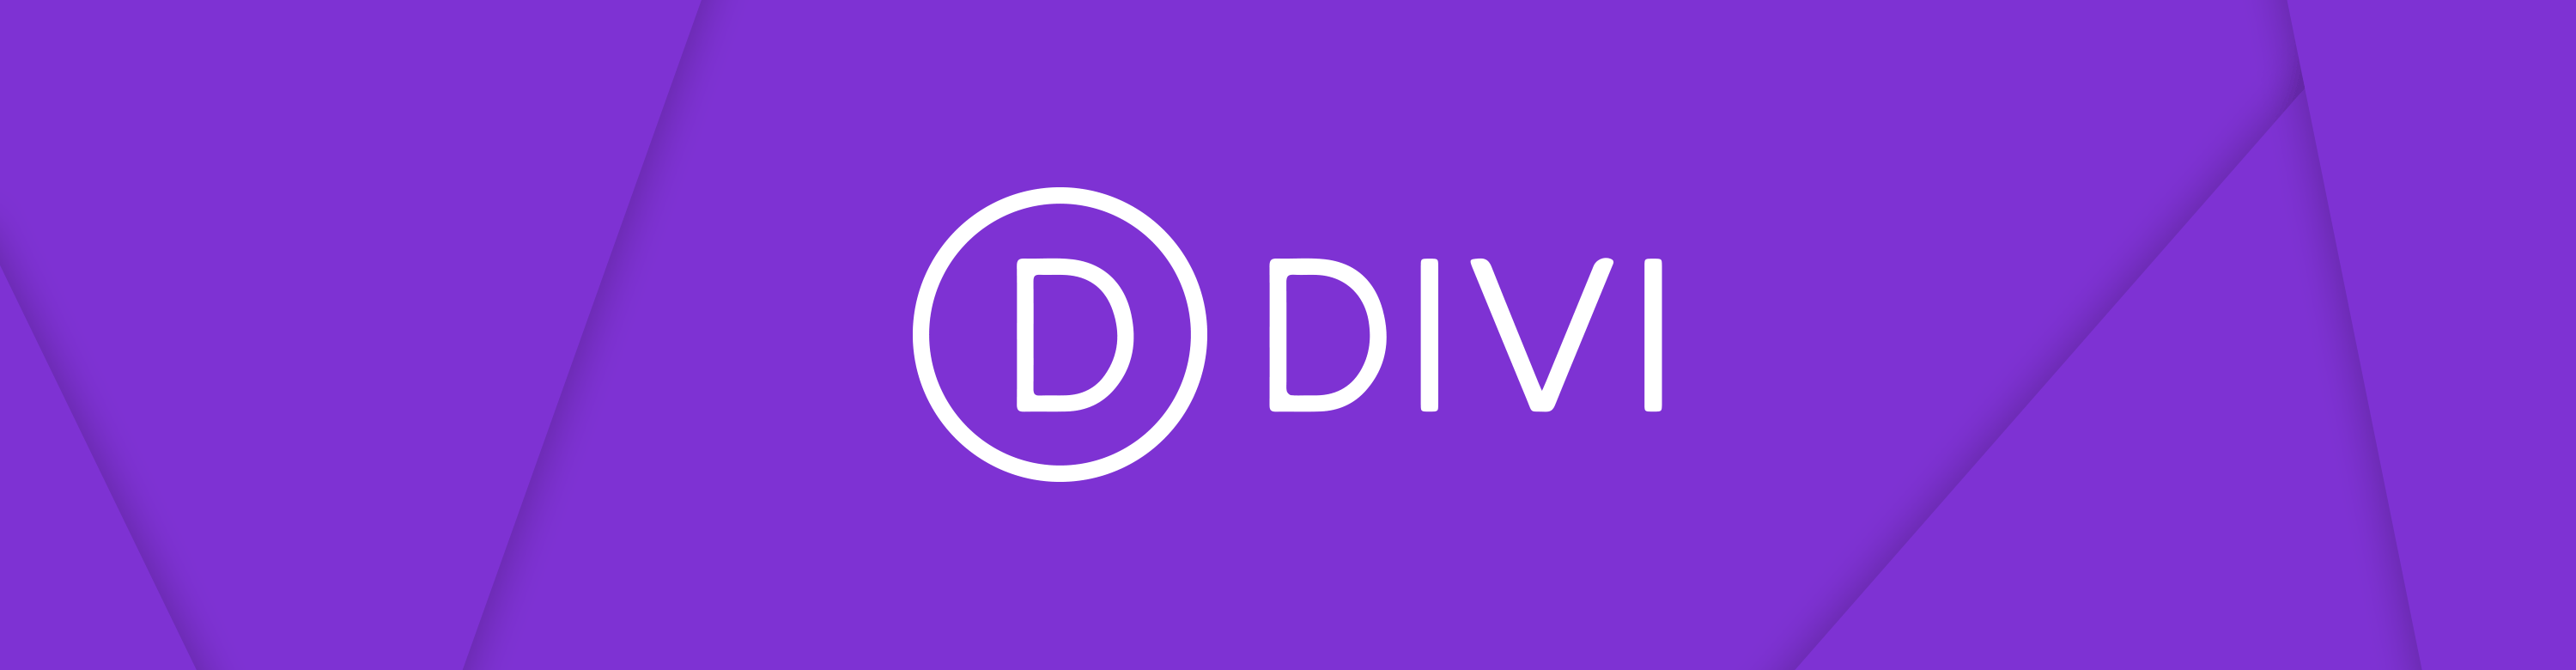 Everything you need to know to get started with Divi - WPMU DEV